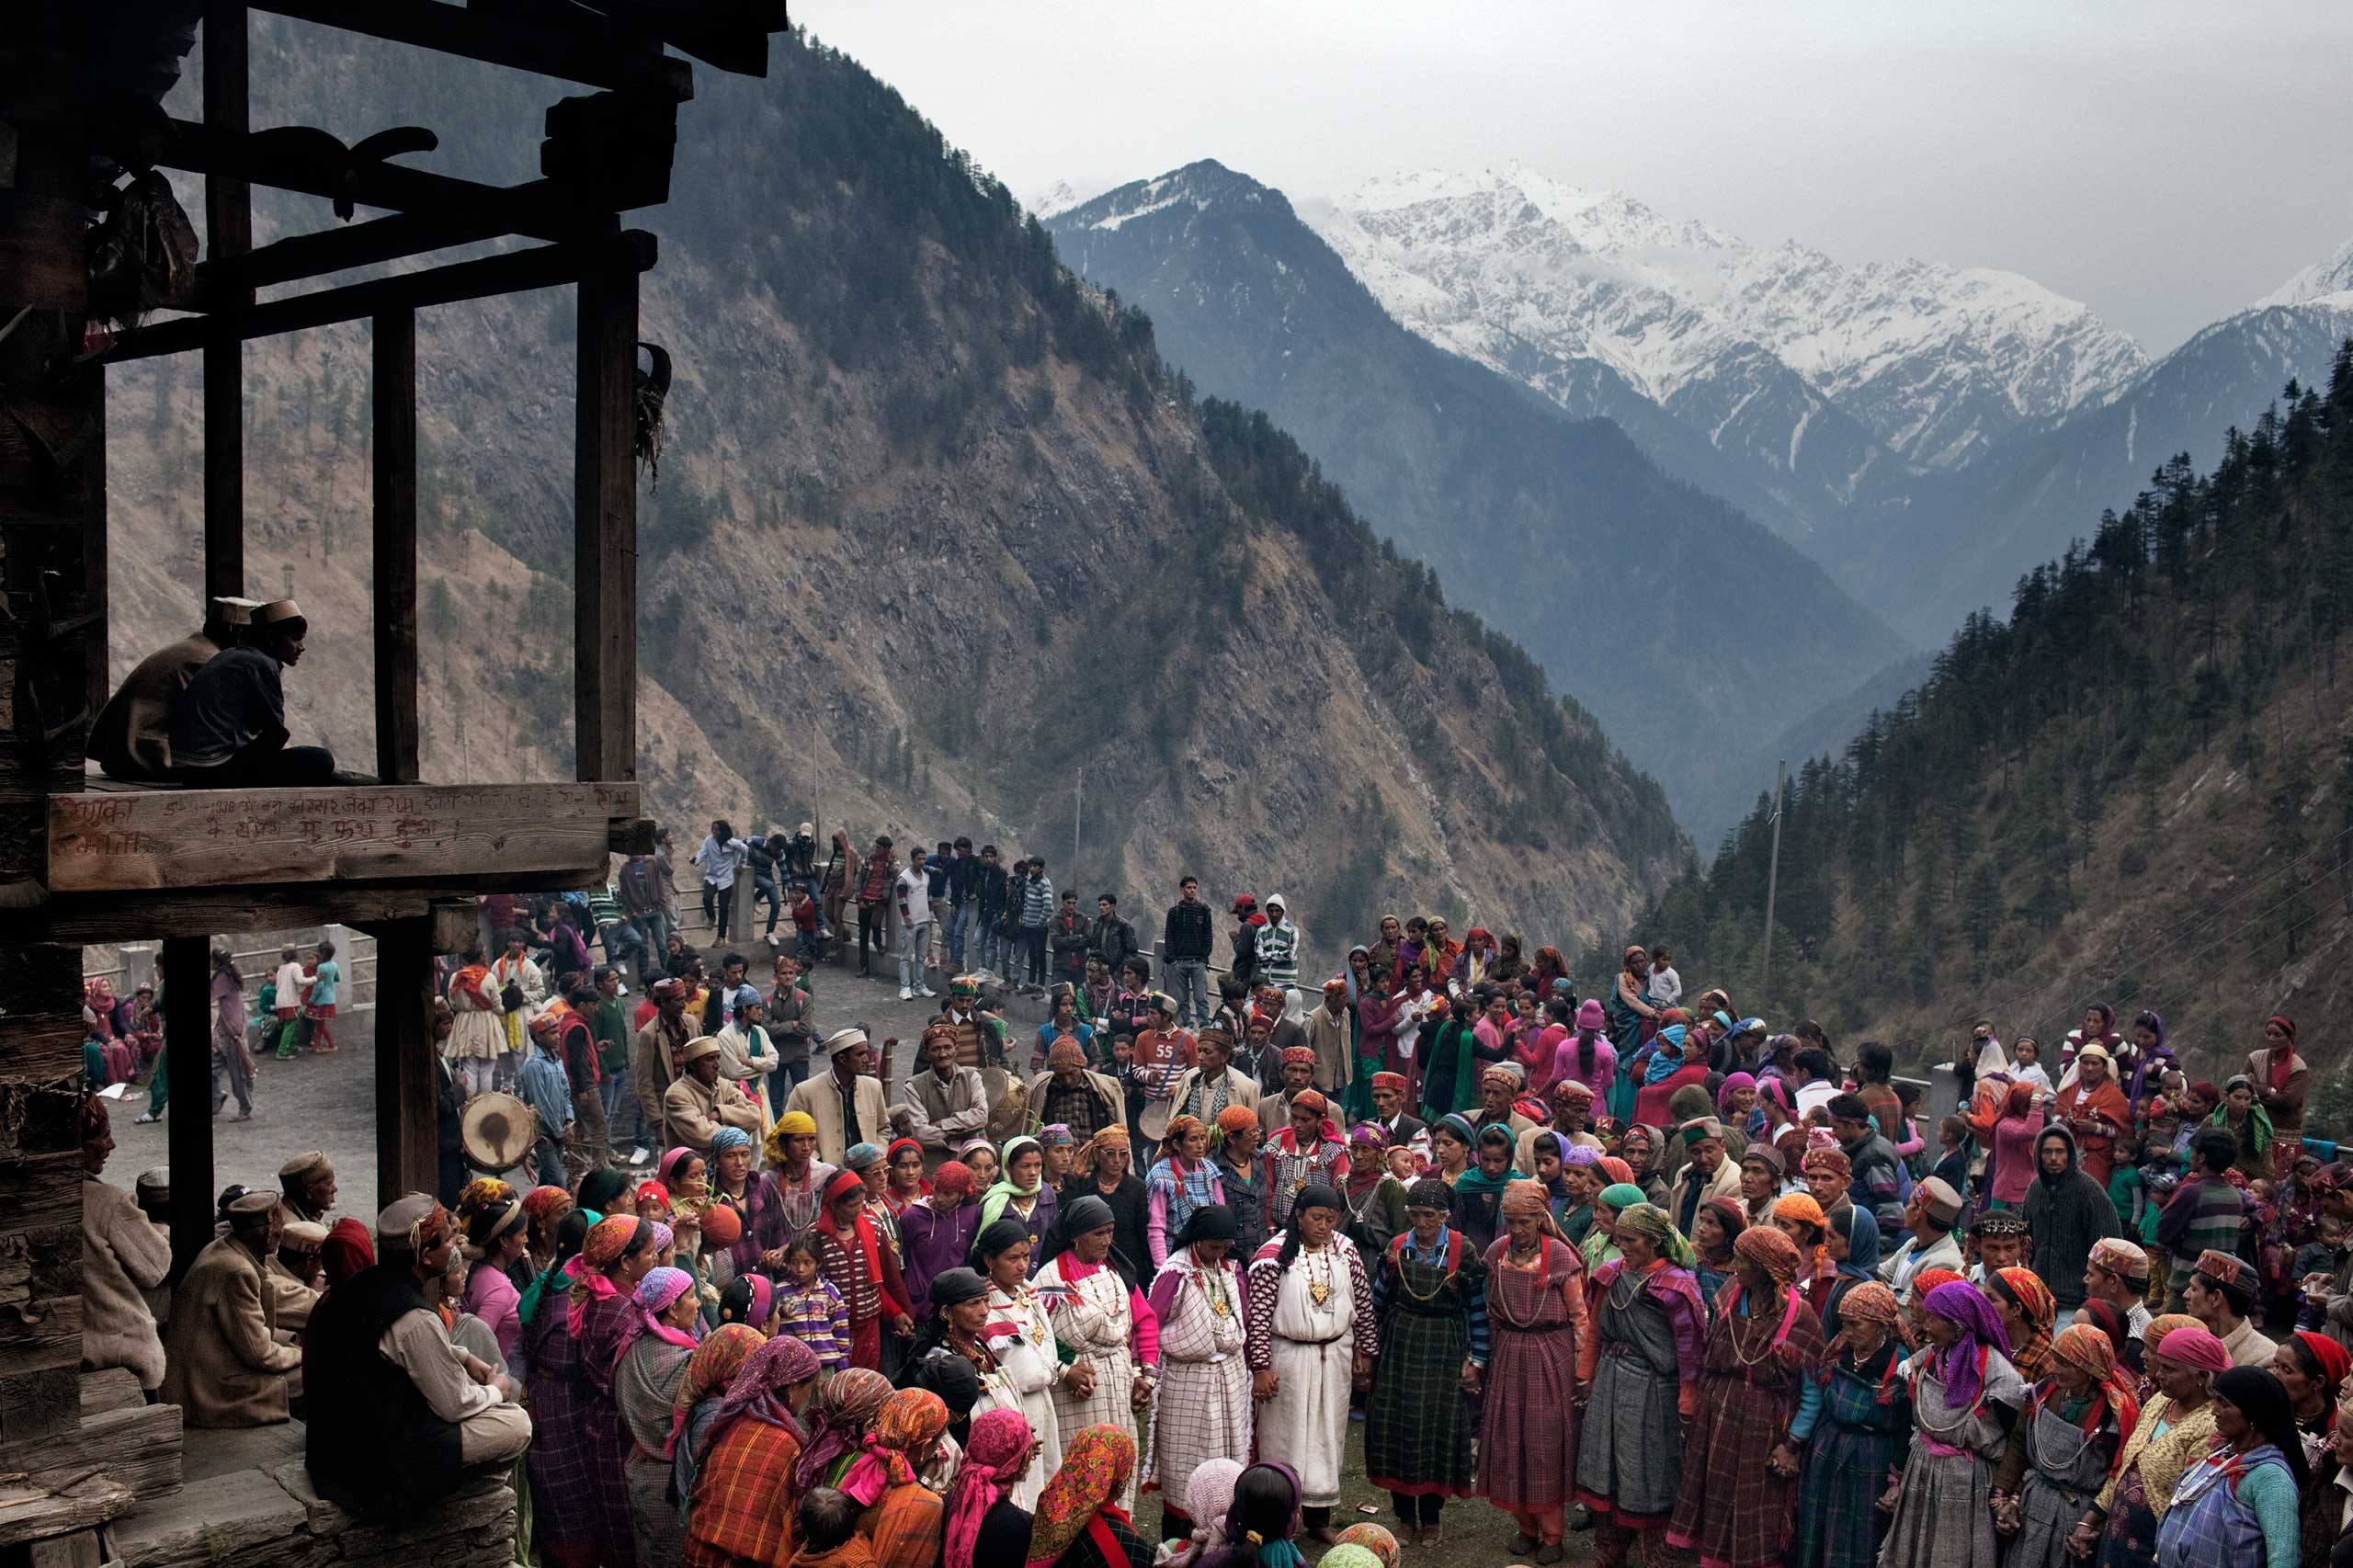 Villagers gather in the square during a celebration known as a 'mela' in which three different villages come together in April 2013.